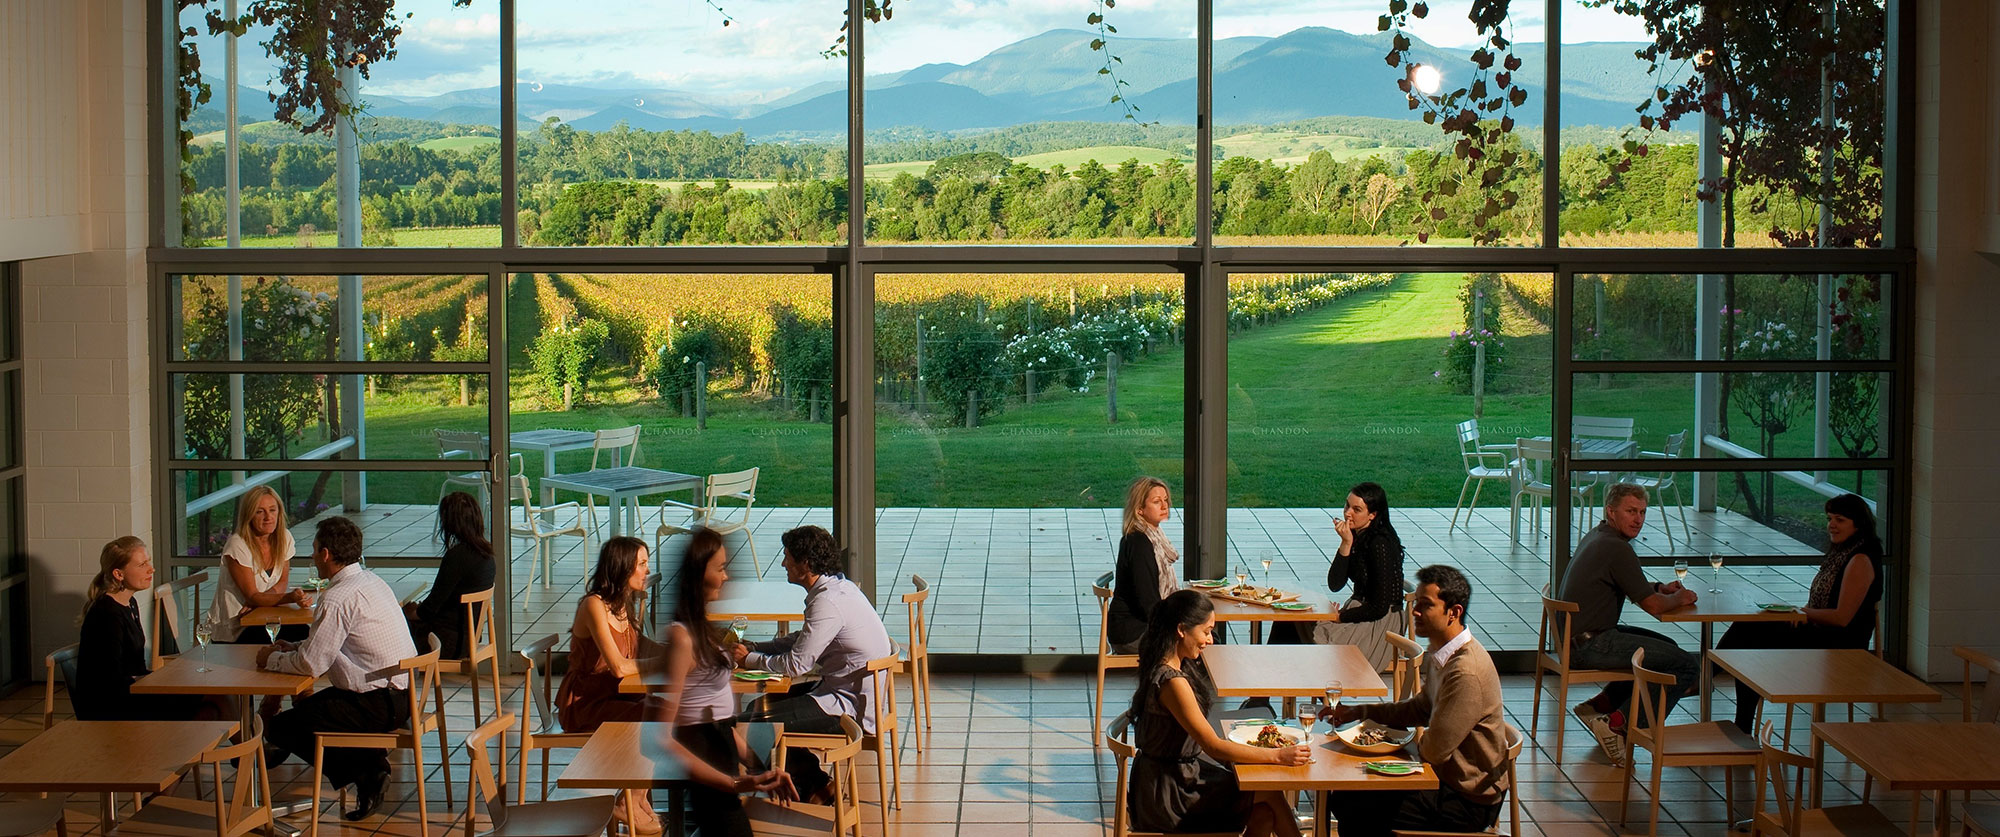 Dining at Domaine Chandon winery in the Yarra Valley, Melbourne, Victoria, Australia